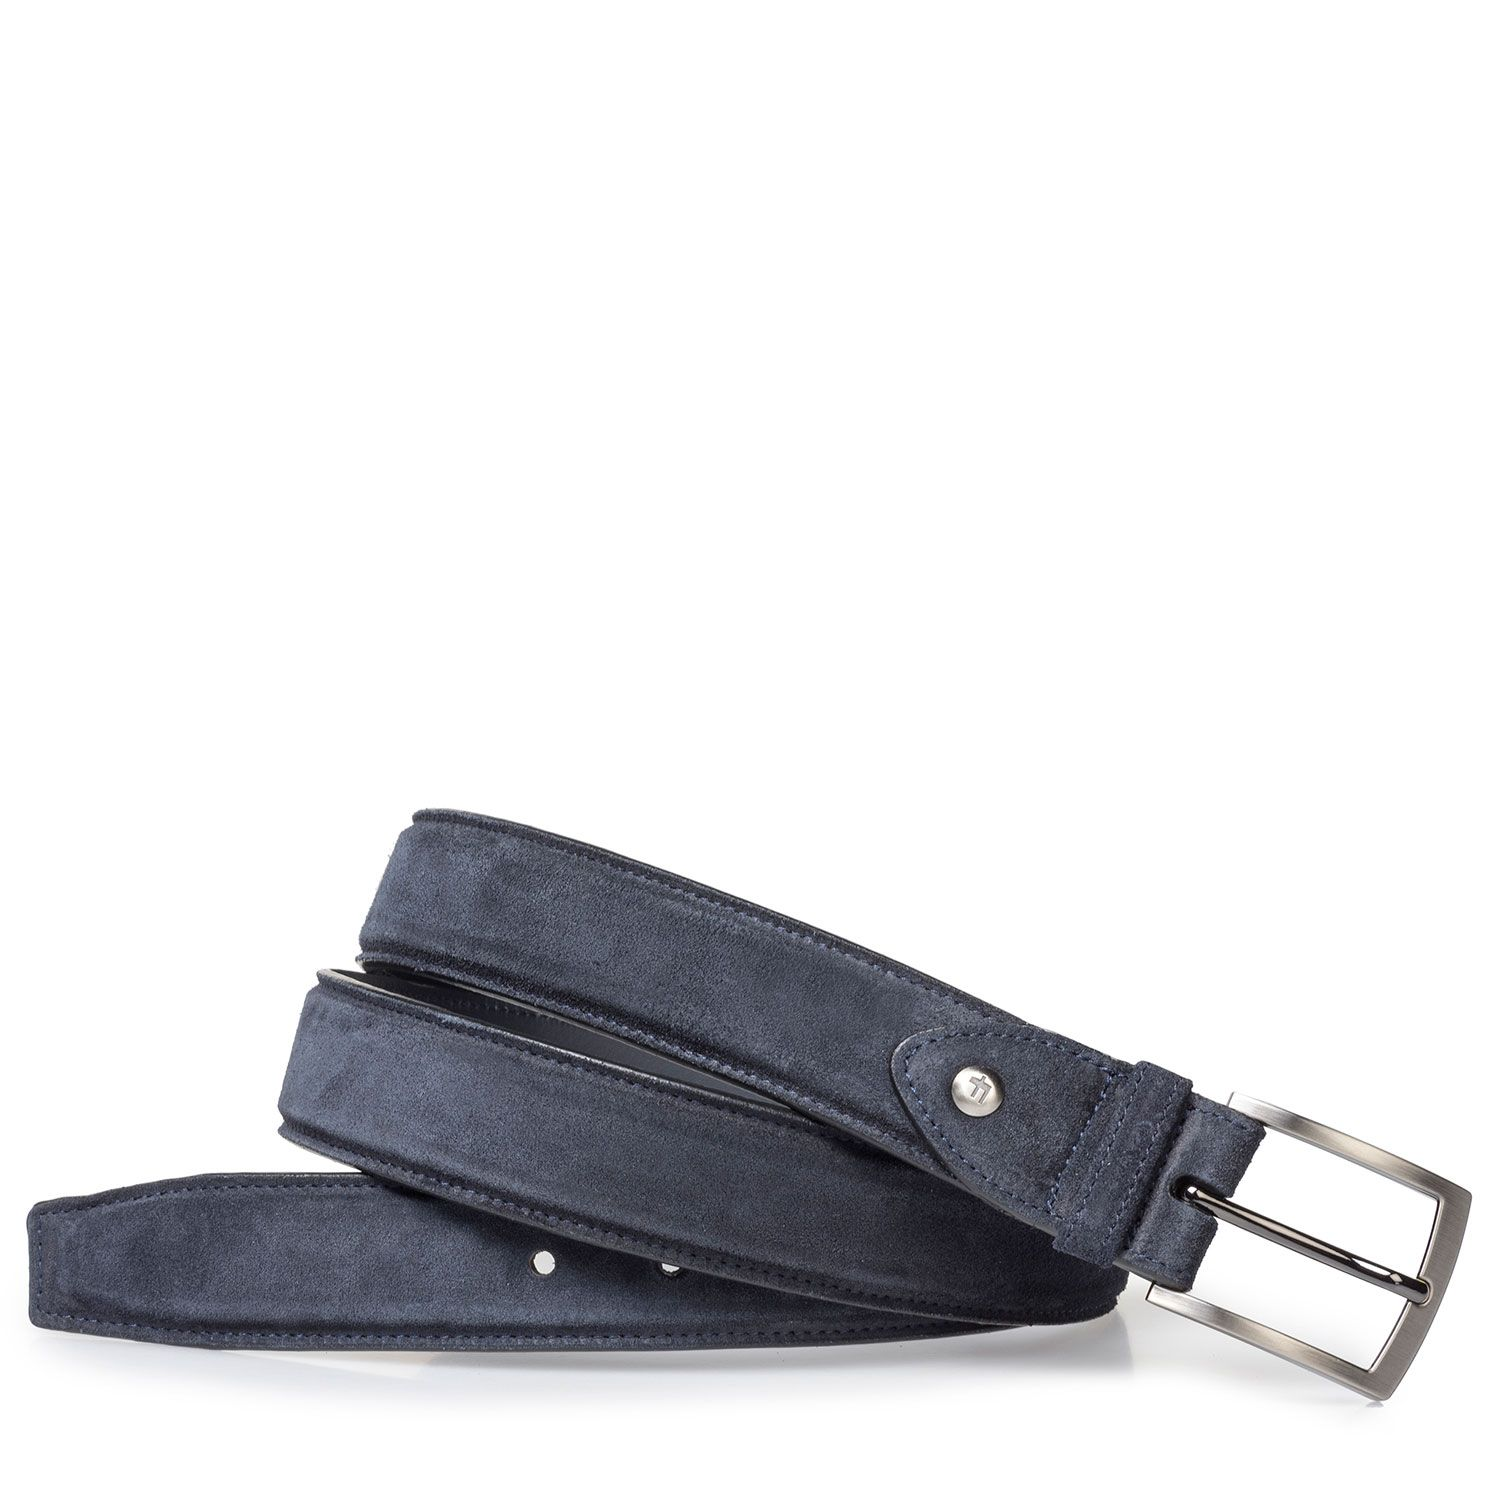 75200/43 - Lightly buffed, blue suede leather belt